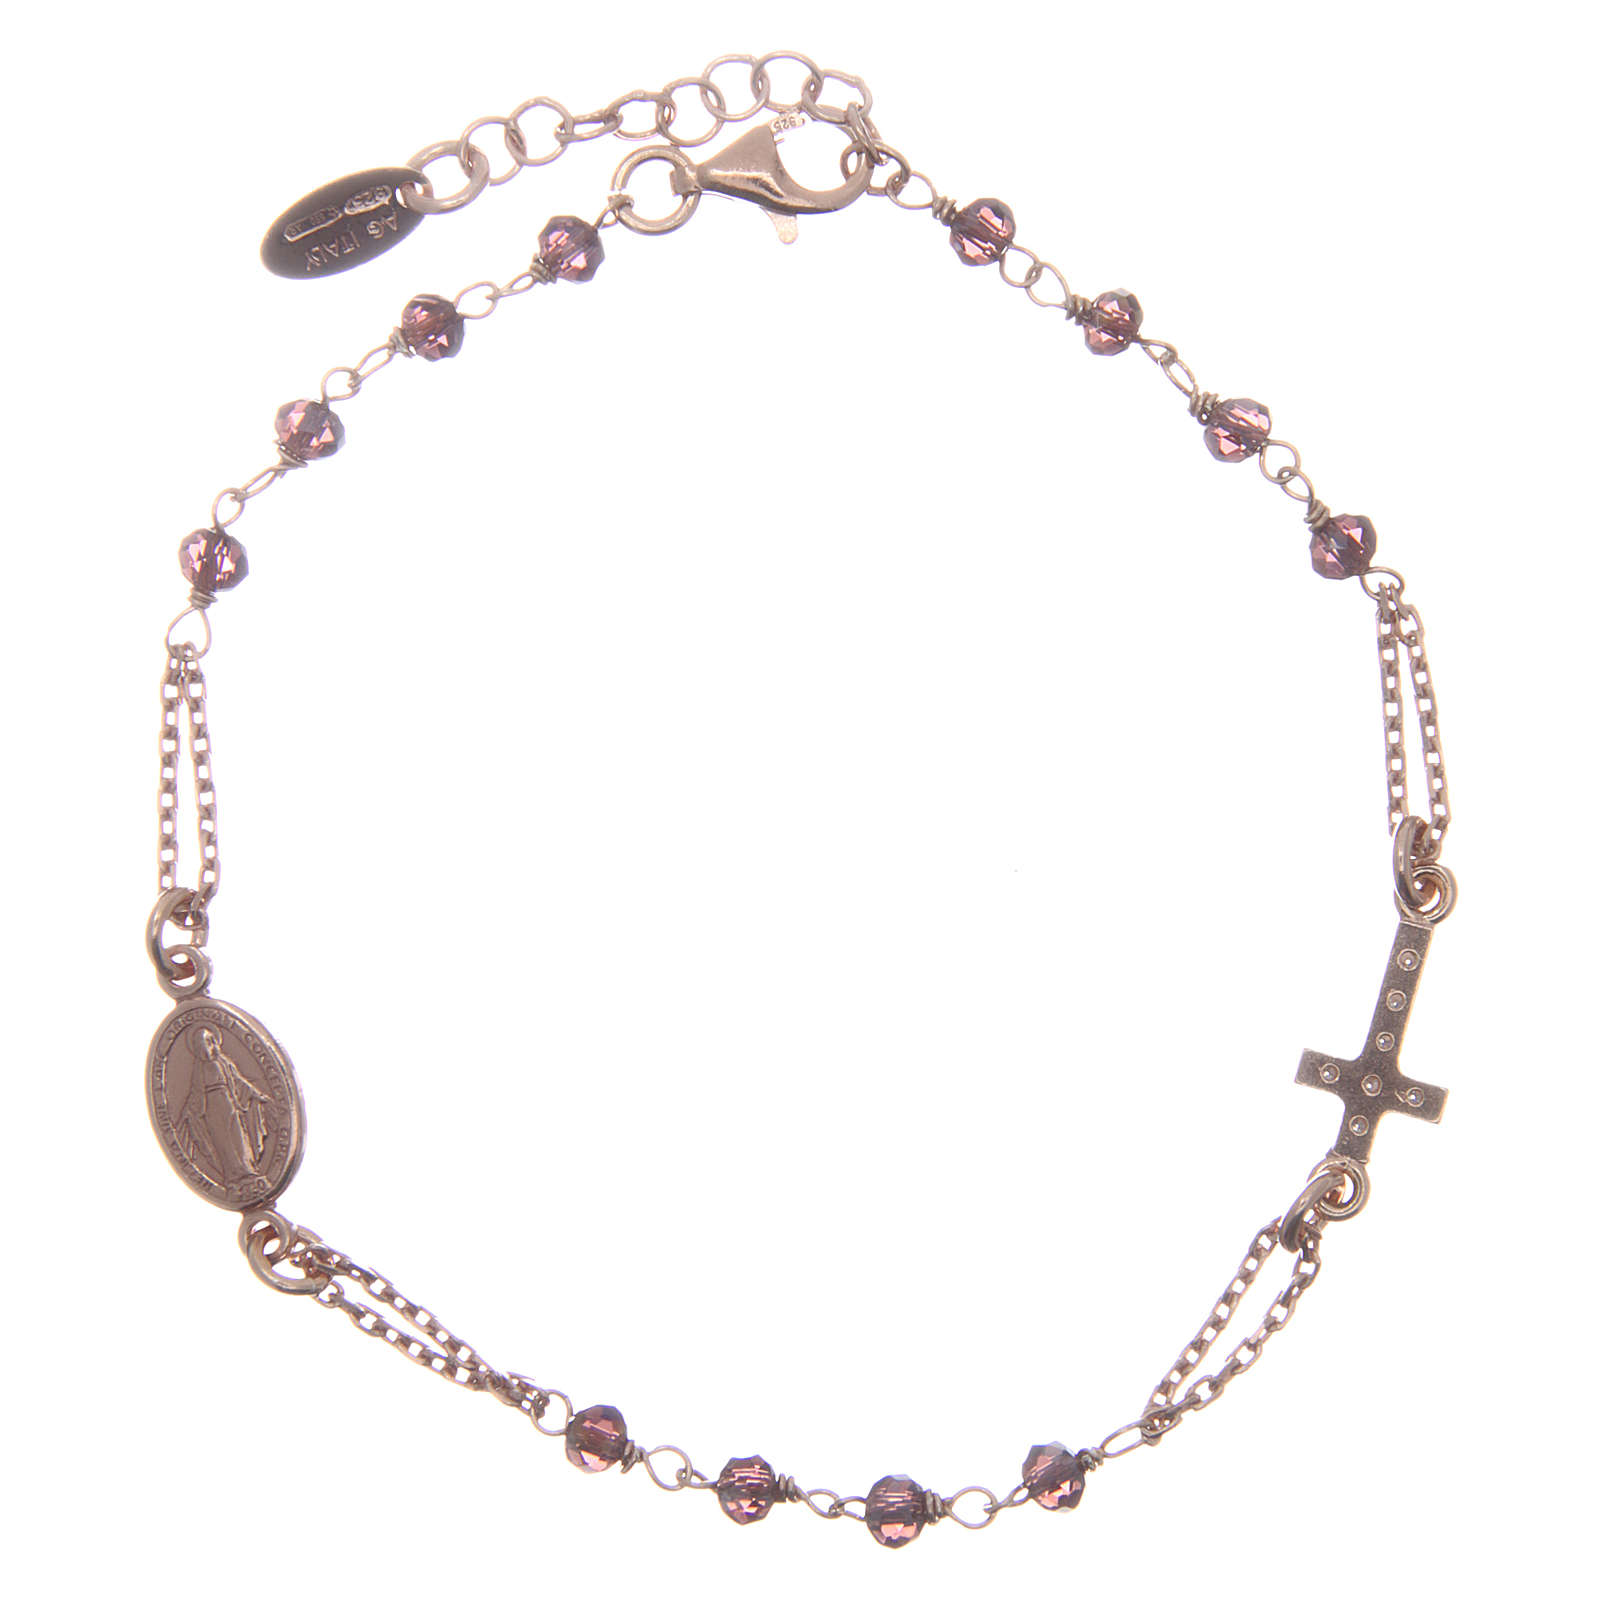 AMEN bracelet in pink 925 silver with purple crystals and cross-shaped charm decorated with white rhinestones 4